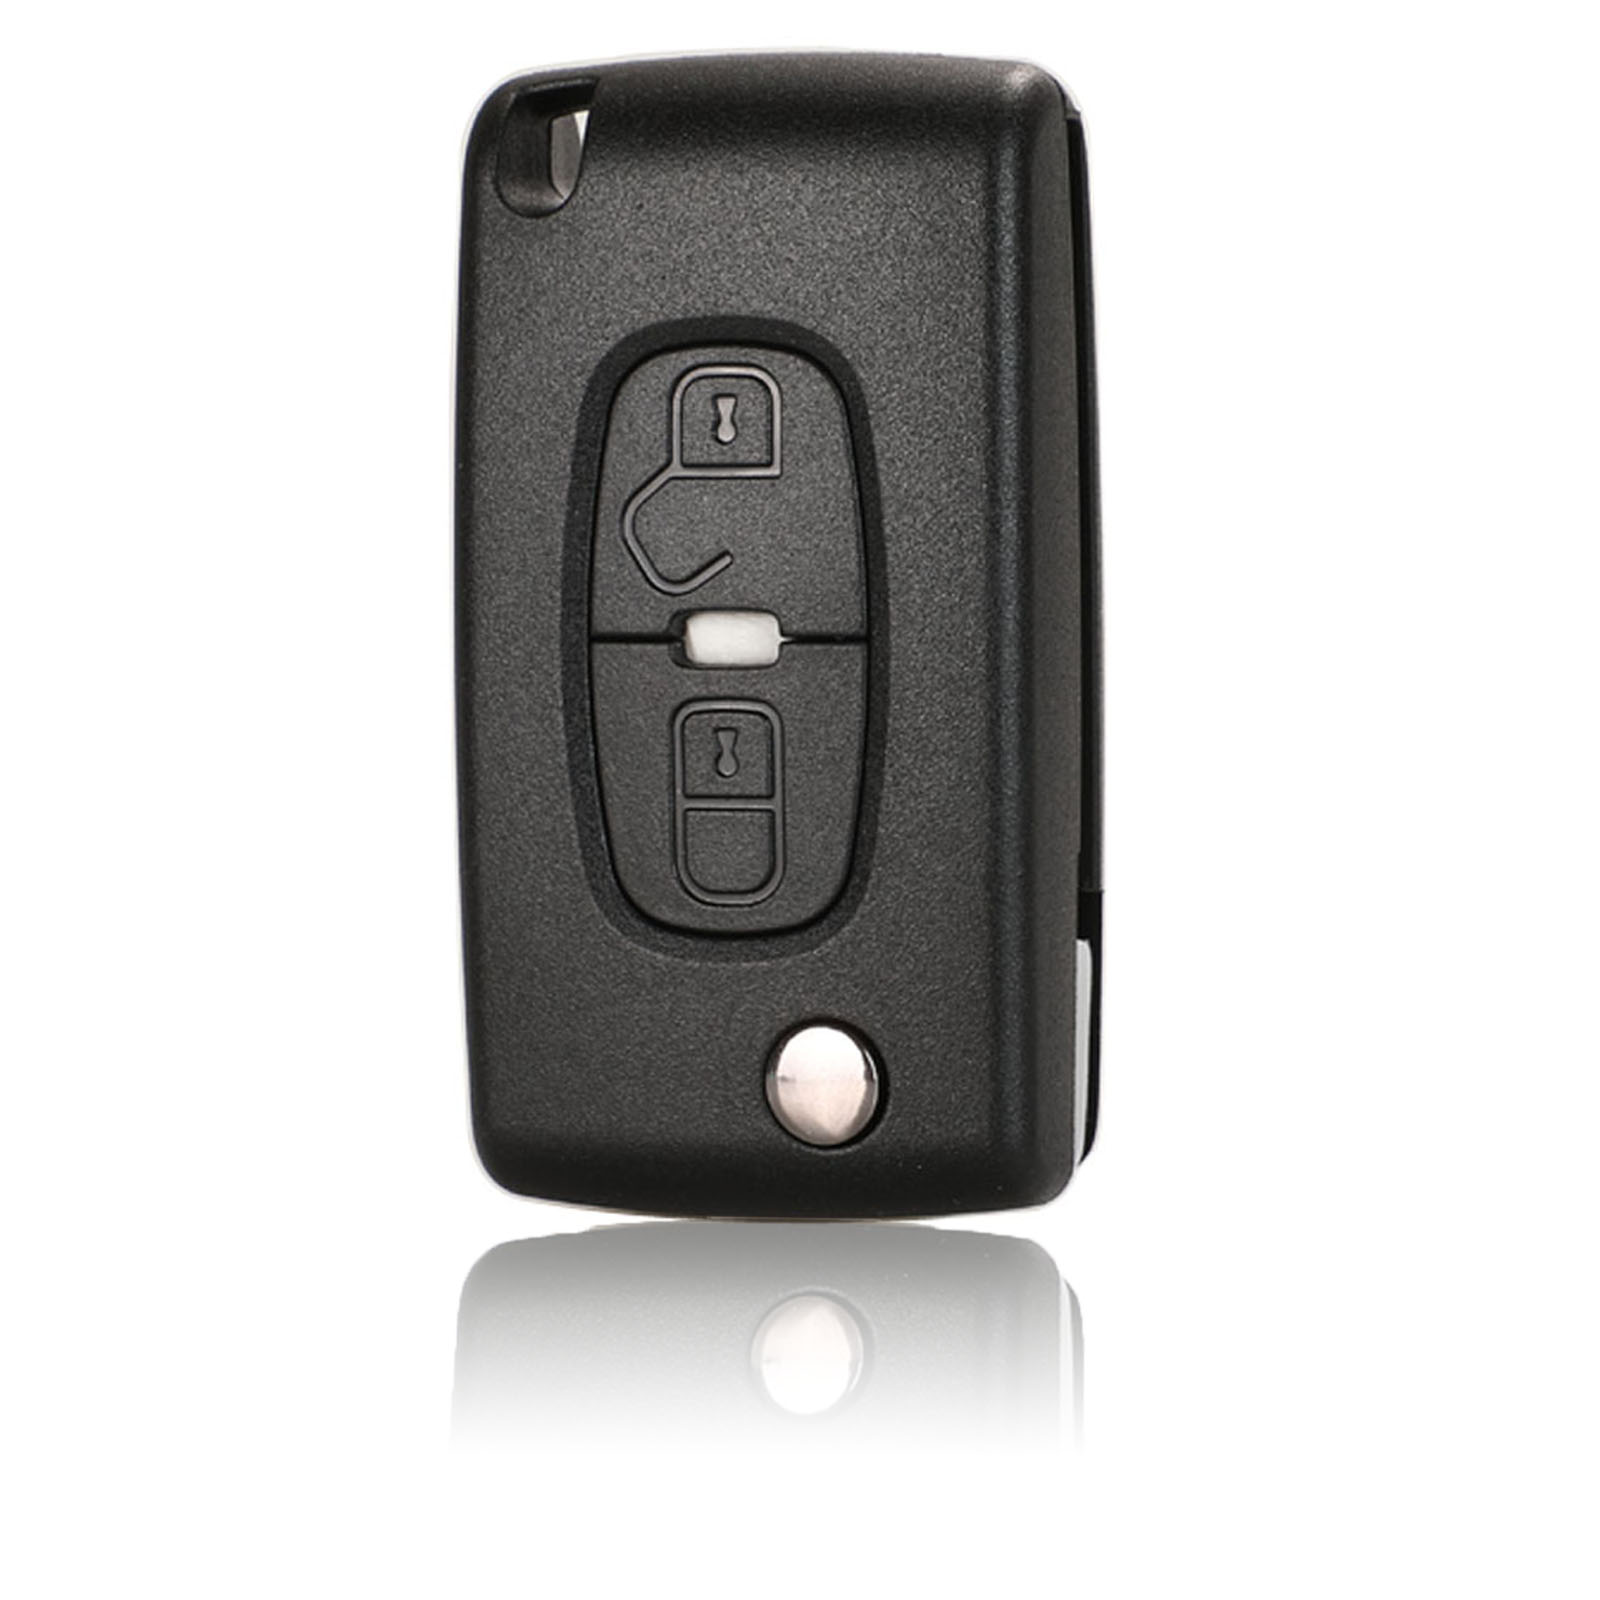 jingyuqin For <font><b>Peugeot</b></font> 4007 ET <font><b>4008</b></font> Citroen C-Crosser C4 Aircross 2 Button Flip Remote <font><b>Key</b></font> Case Shell Fob MIT-11R Blade CE1731 image